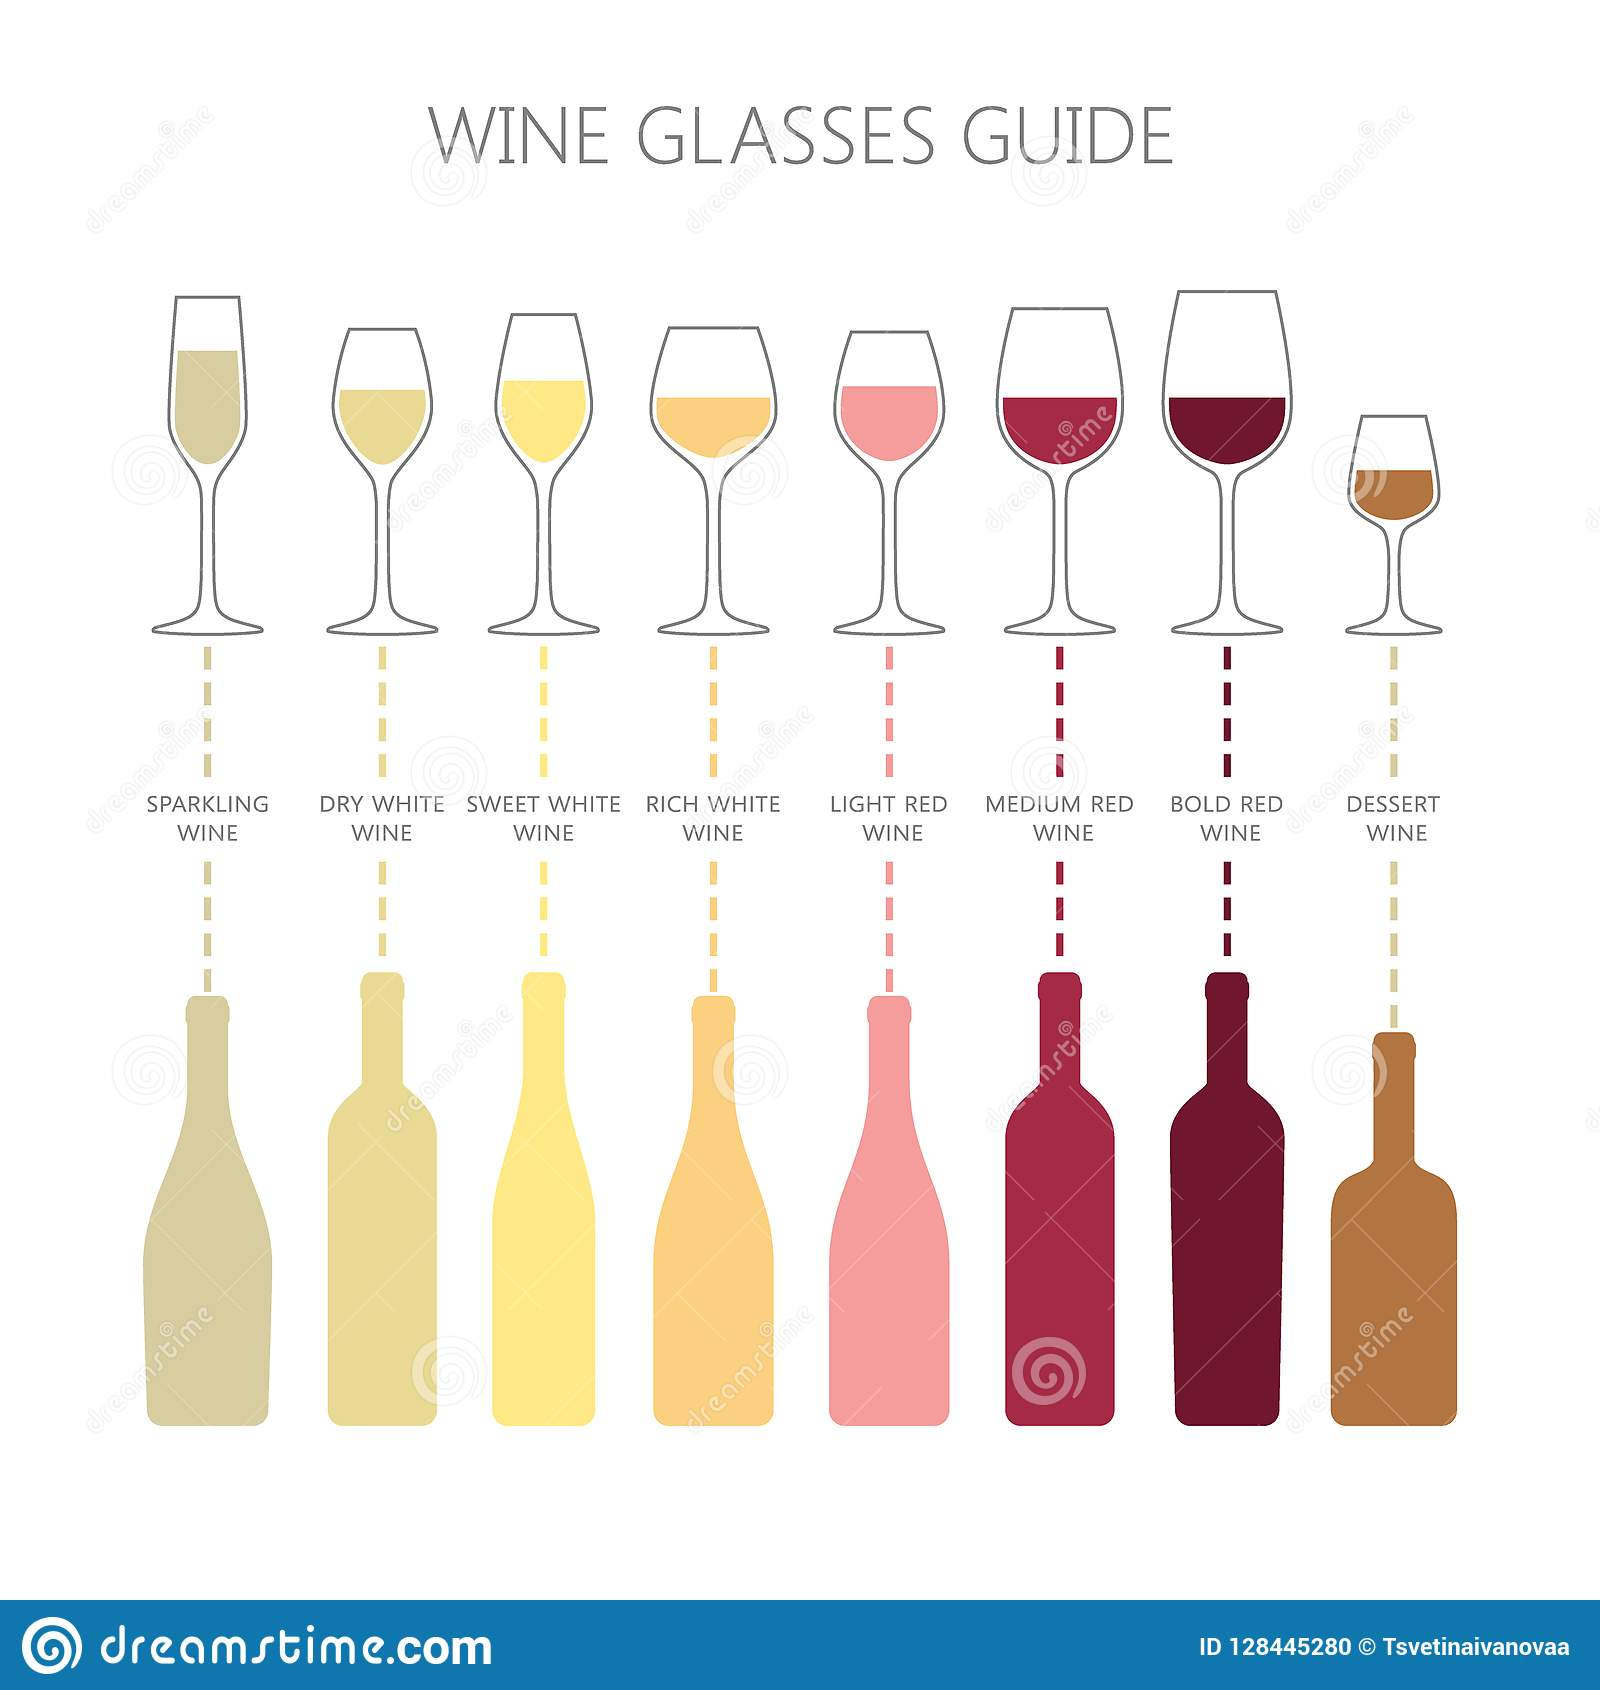 hight resolution of wine glasses and bottles guide infographic colorful vector wine glass and wine bottle types icons